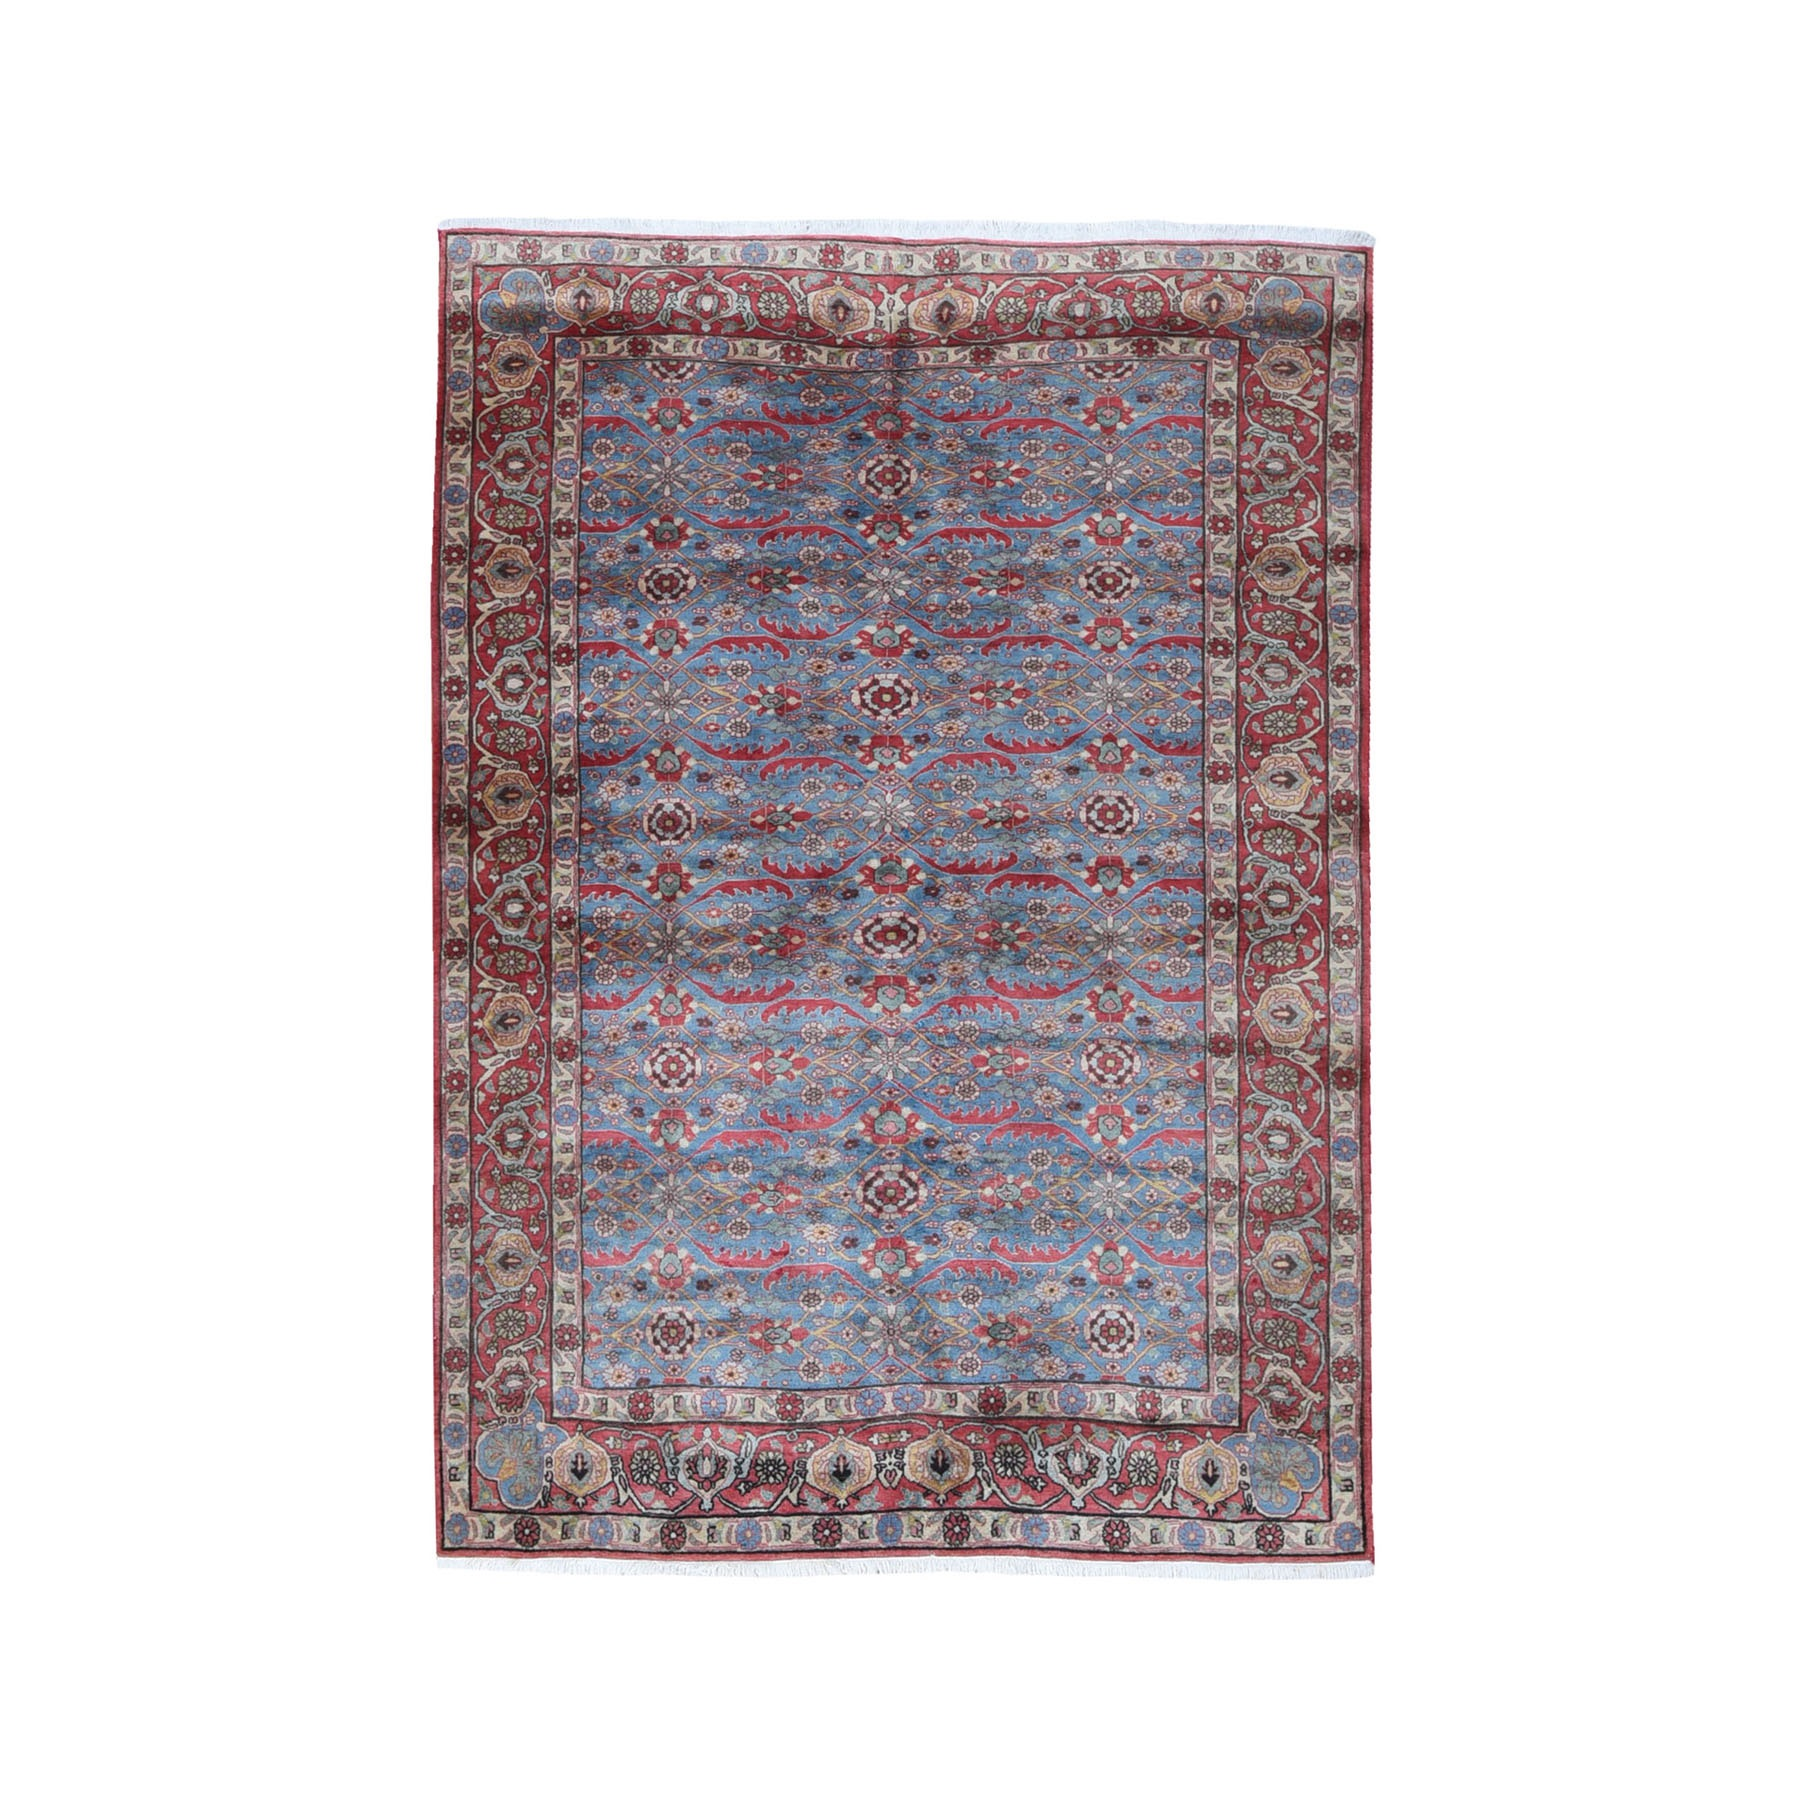 """4'9""""x7' Vintage Persian Tabriz All Over Design Light Blue Dense Weave Pure Wool Hand Knotted Oriental Rug"""